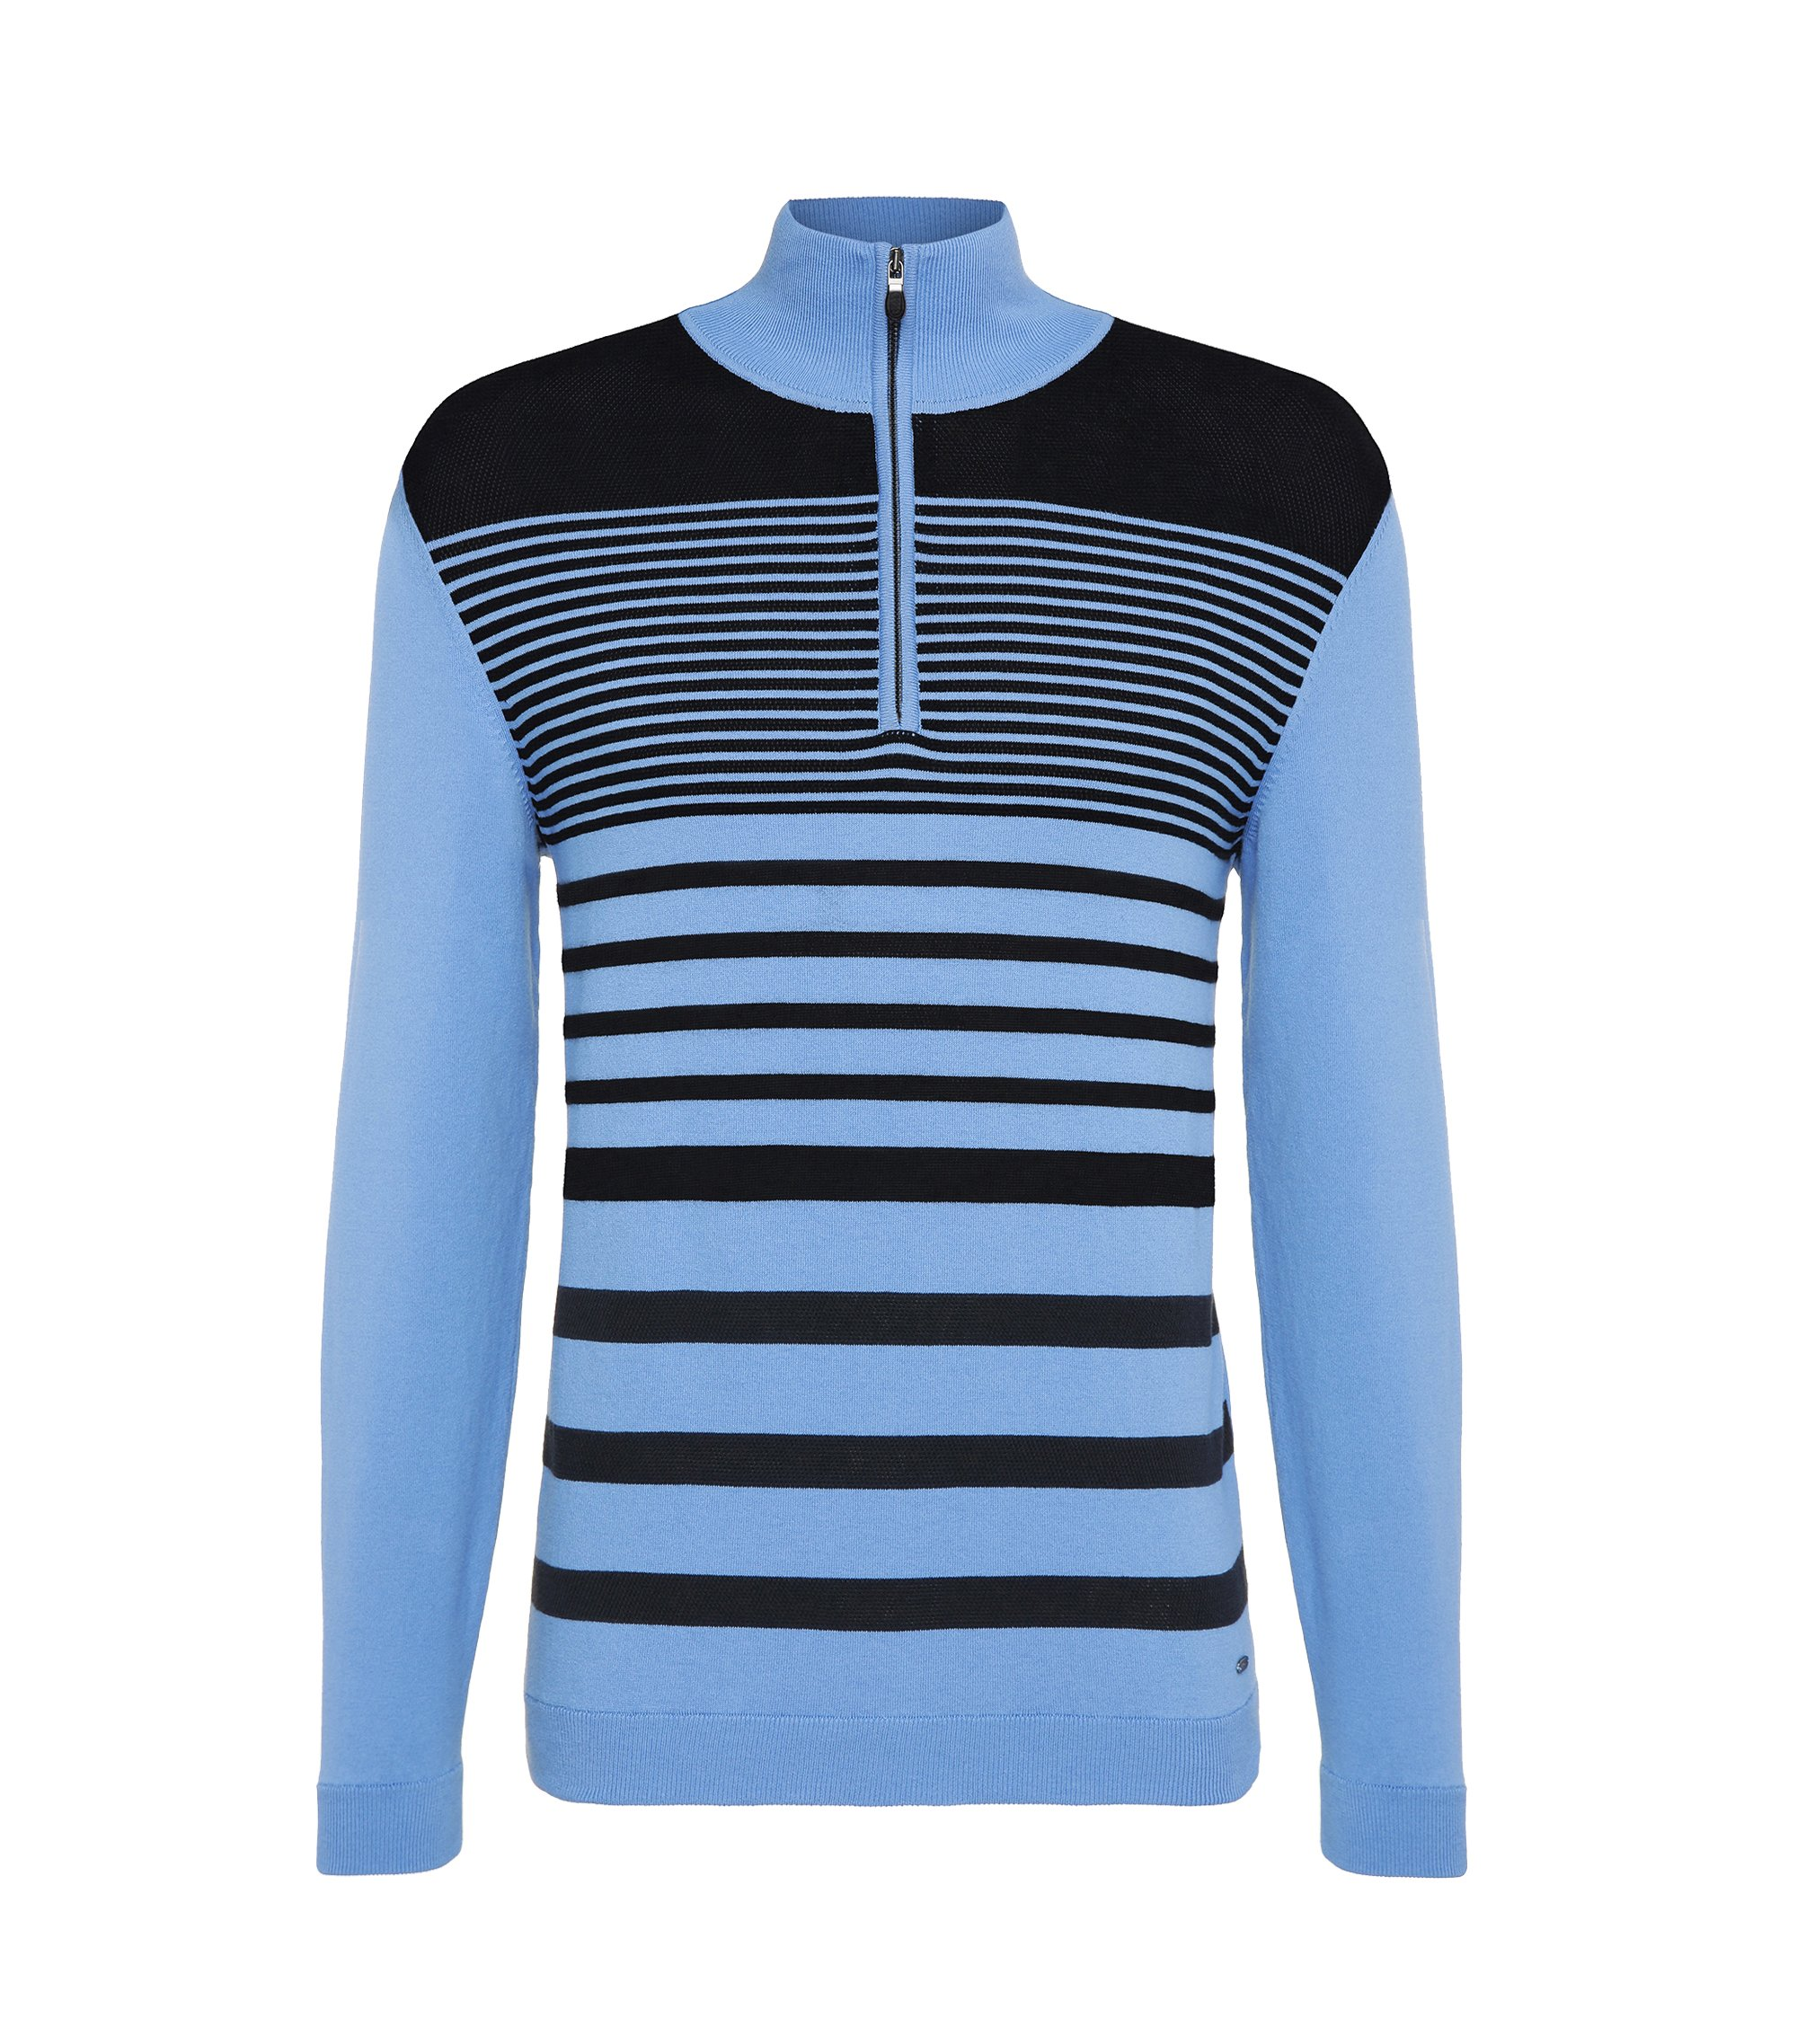 Striped Stretch Cotton Half-Zip Sweater, Slim Fit | Zoco, Blue